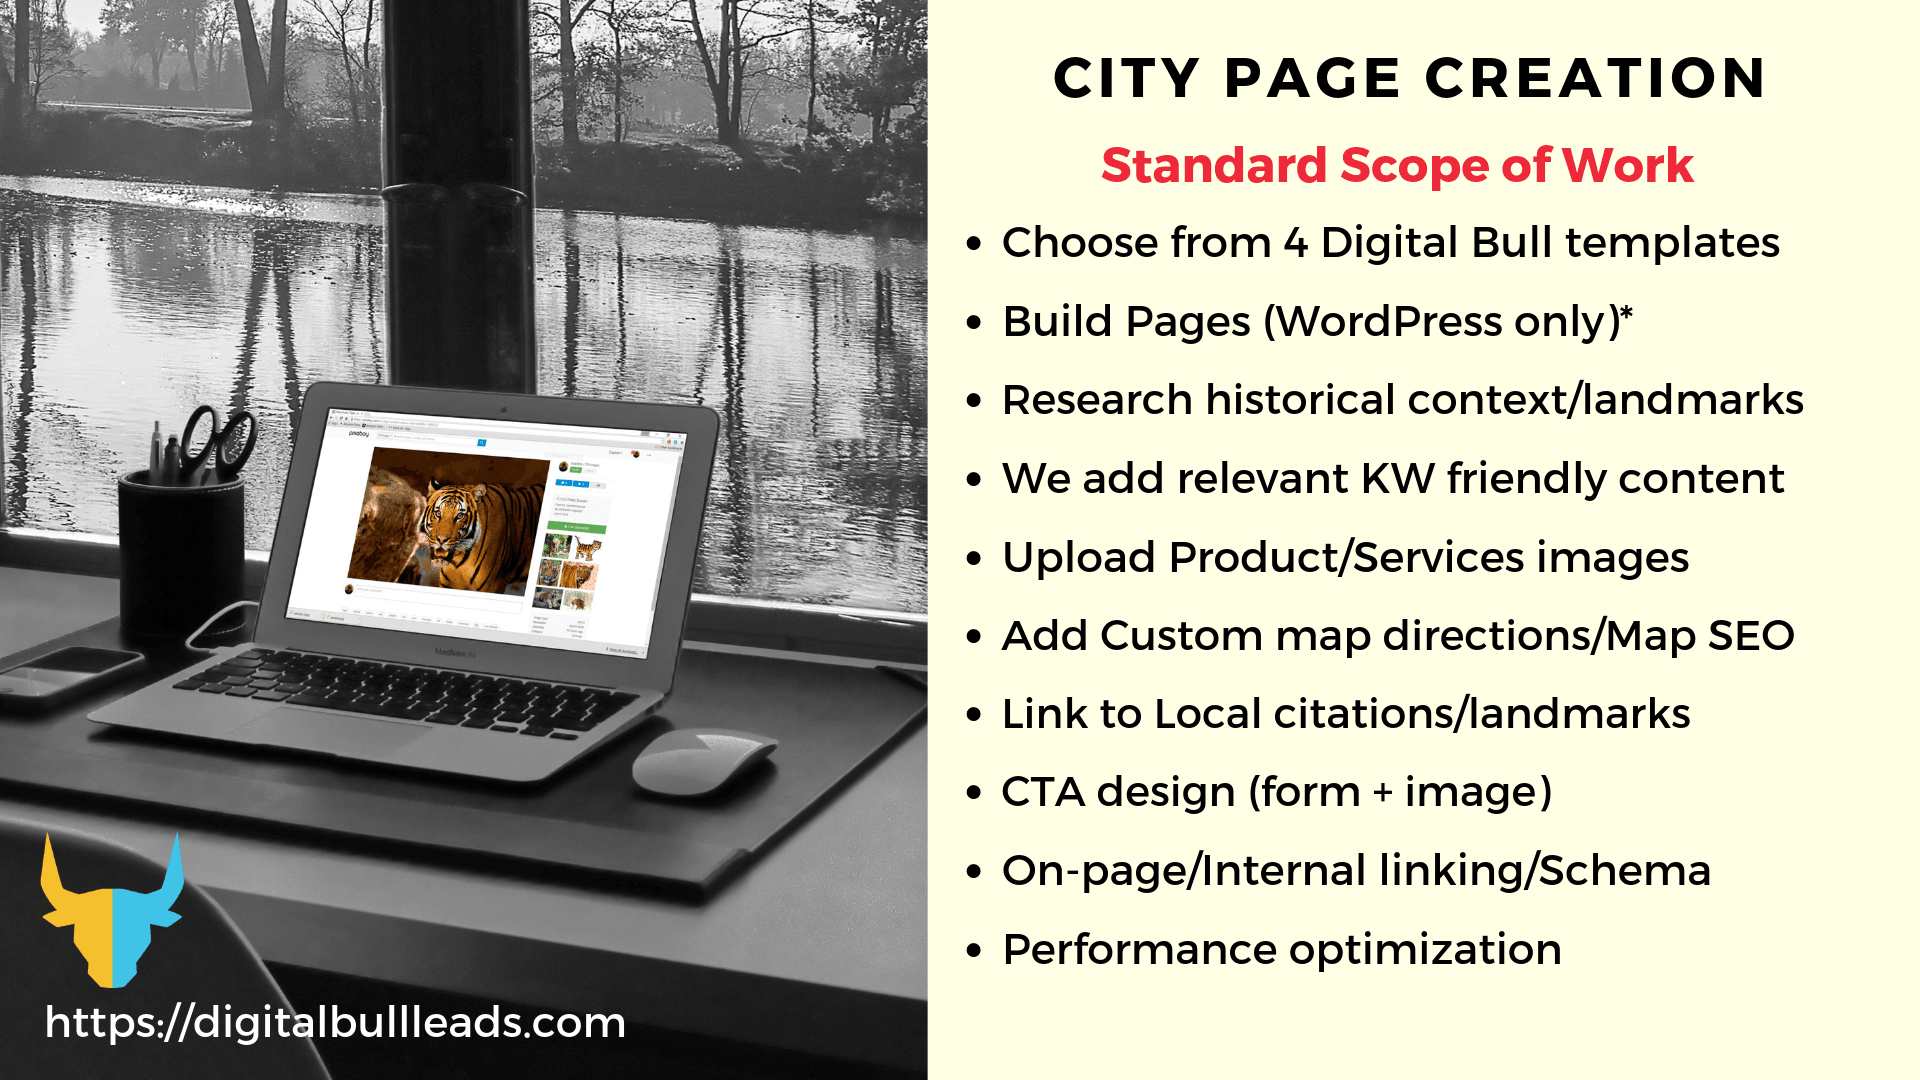 DigitalBullLeads Custom Local City Landing Page Creation Scope of Work